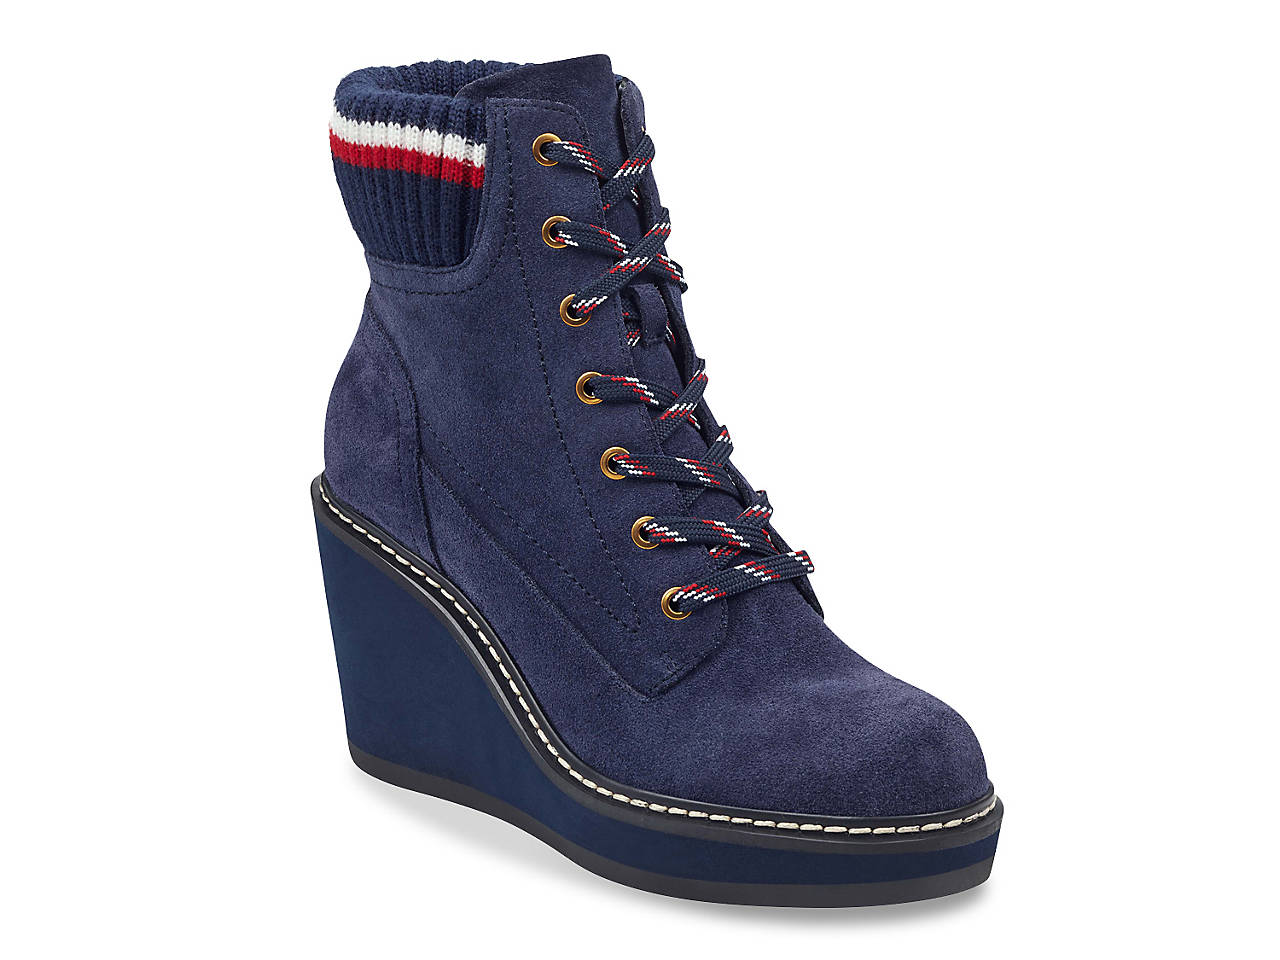 bc1364a556e46e Tommy Hilfiger Solenne Wedge Bootie Women s Shoes